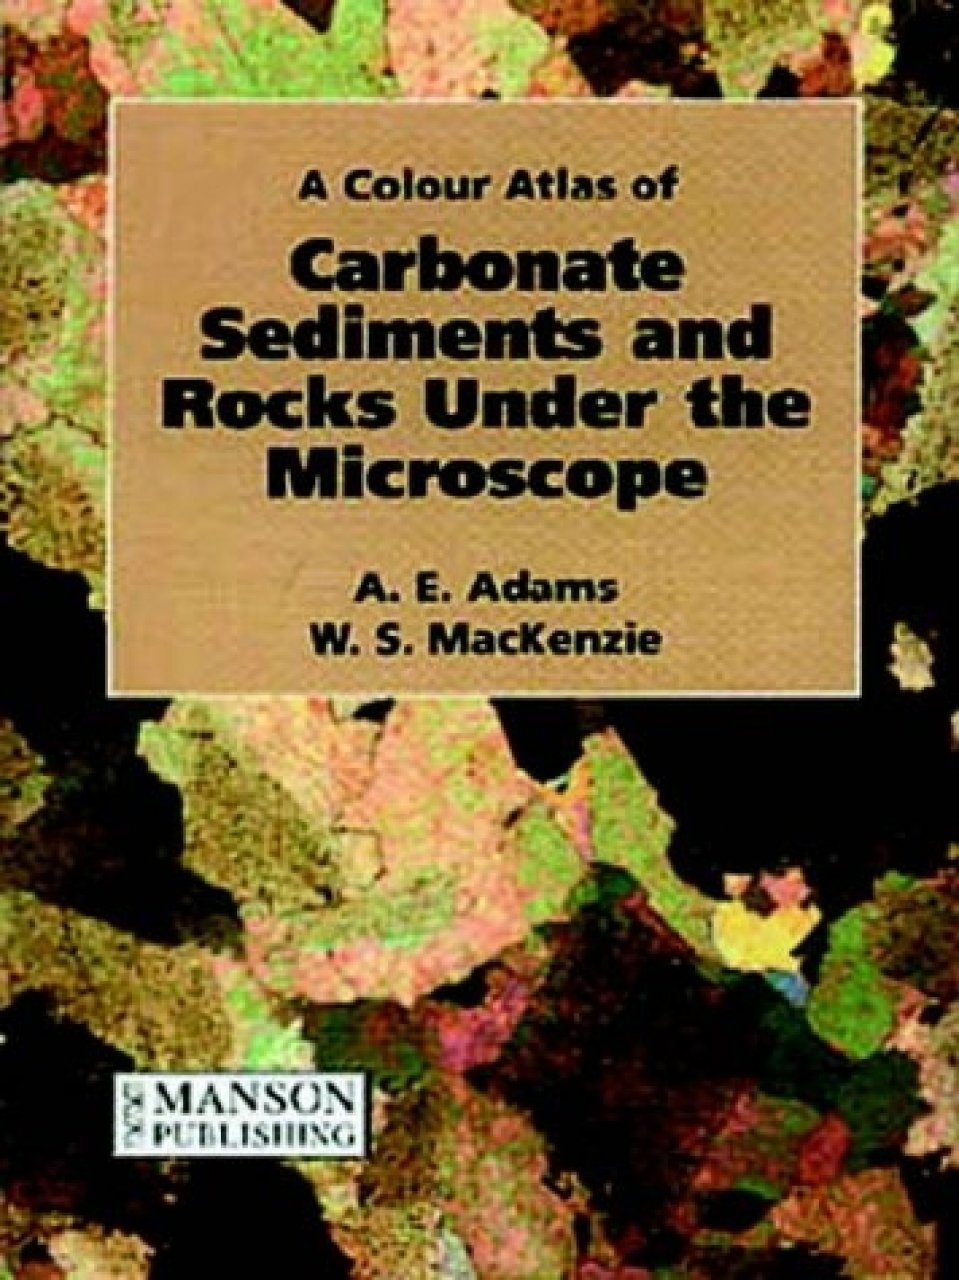 A Colour Atlas of Carbonate Sediments and Rocks Under the Microscope